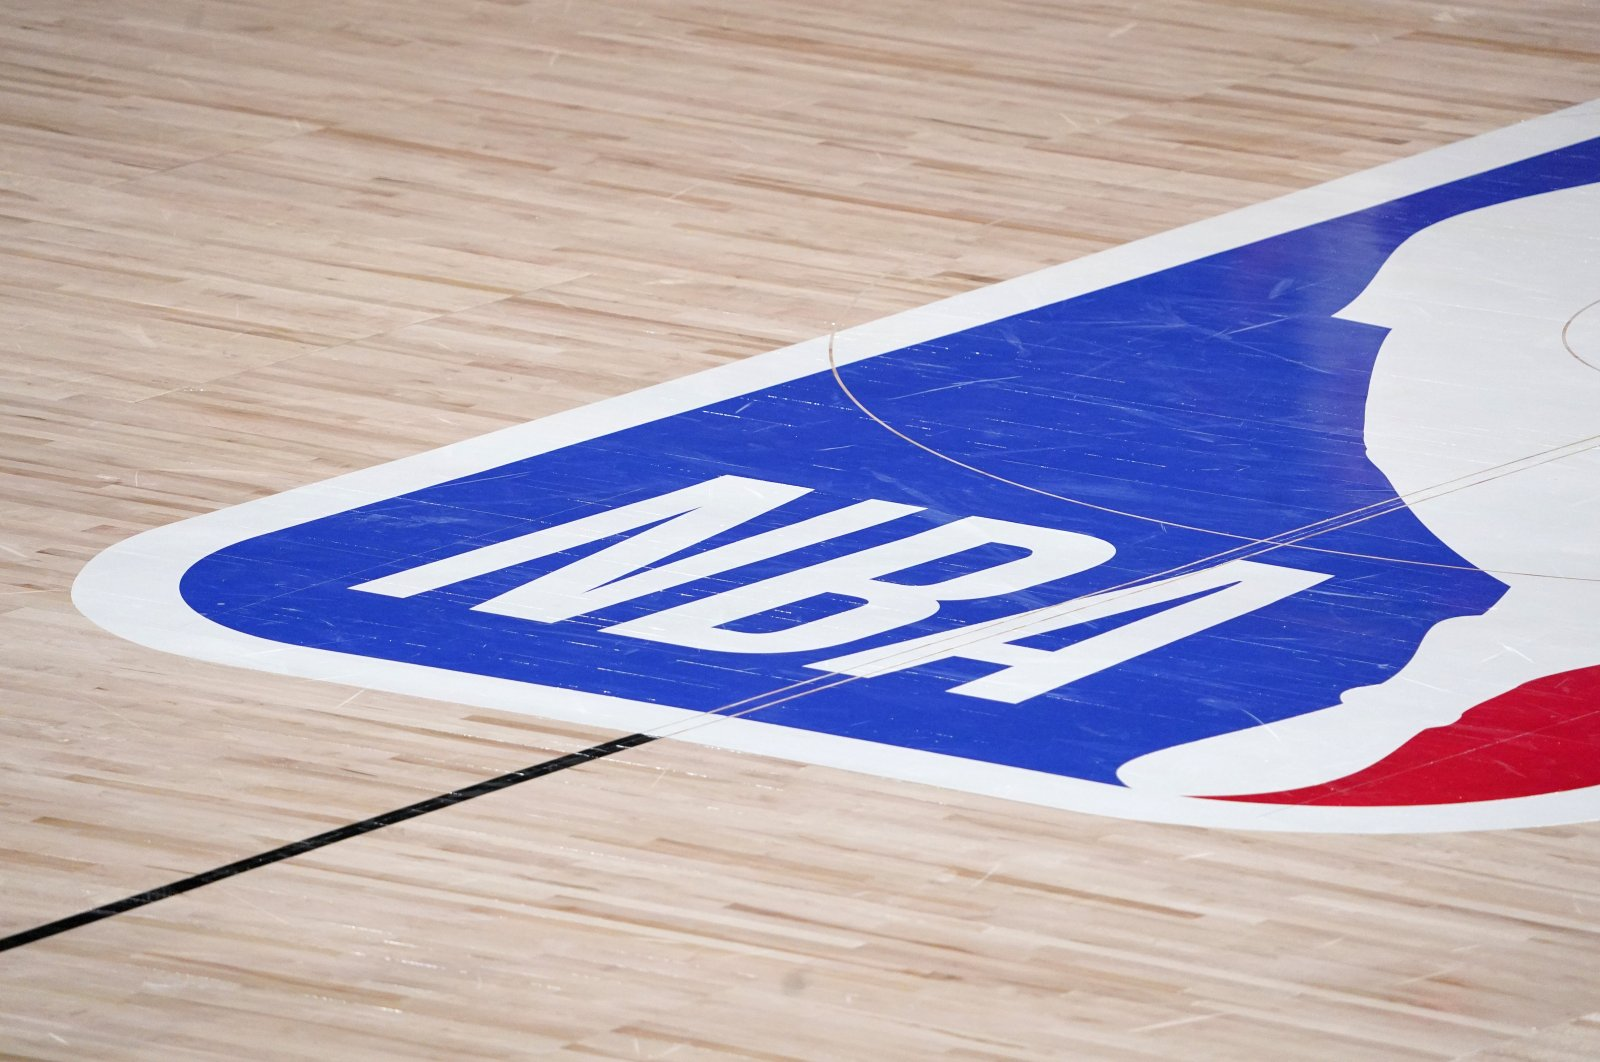 NBA logo at center court in Lake Buena Vista, Florida, United States, Sept. 2, 2020. (AP PHOTO)